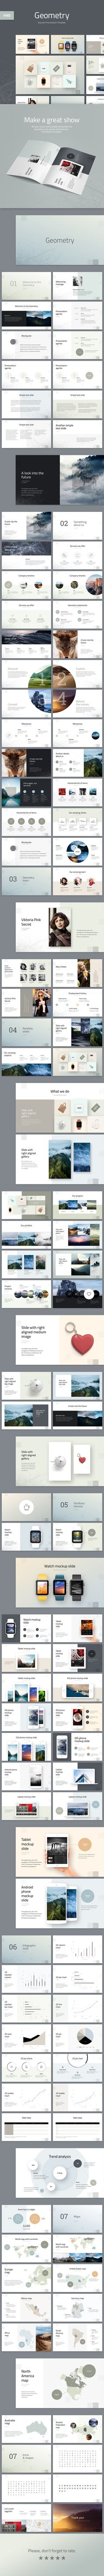 Geometry - Modern Keynote Presentation Template. Download here: https://graphicriver.net/item/geometry-modern-keynote-presentation-template/17246727?ref=ksioks